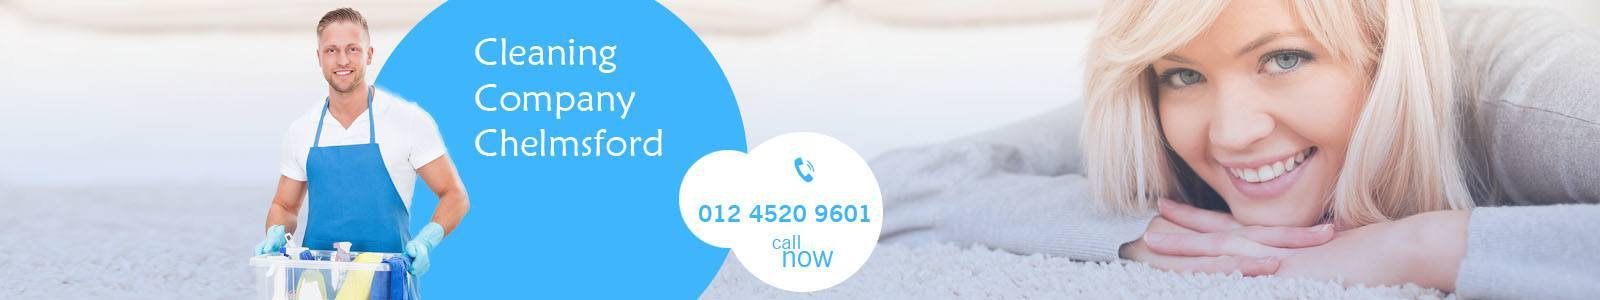 cleaning-company-chelmsford